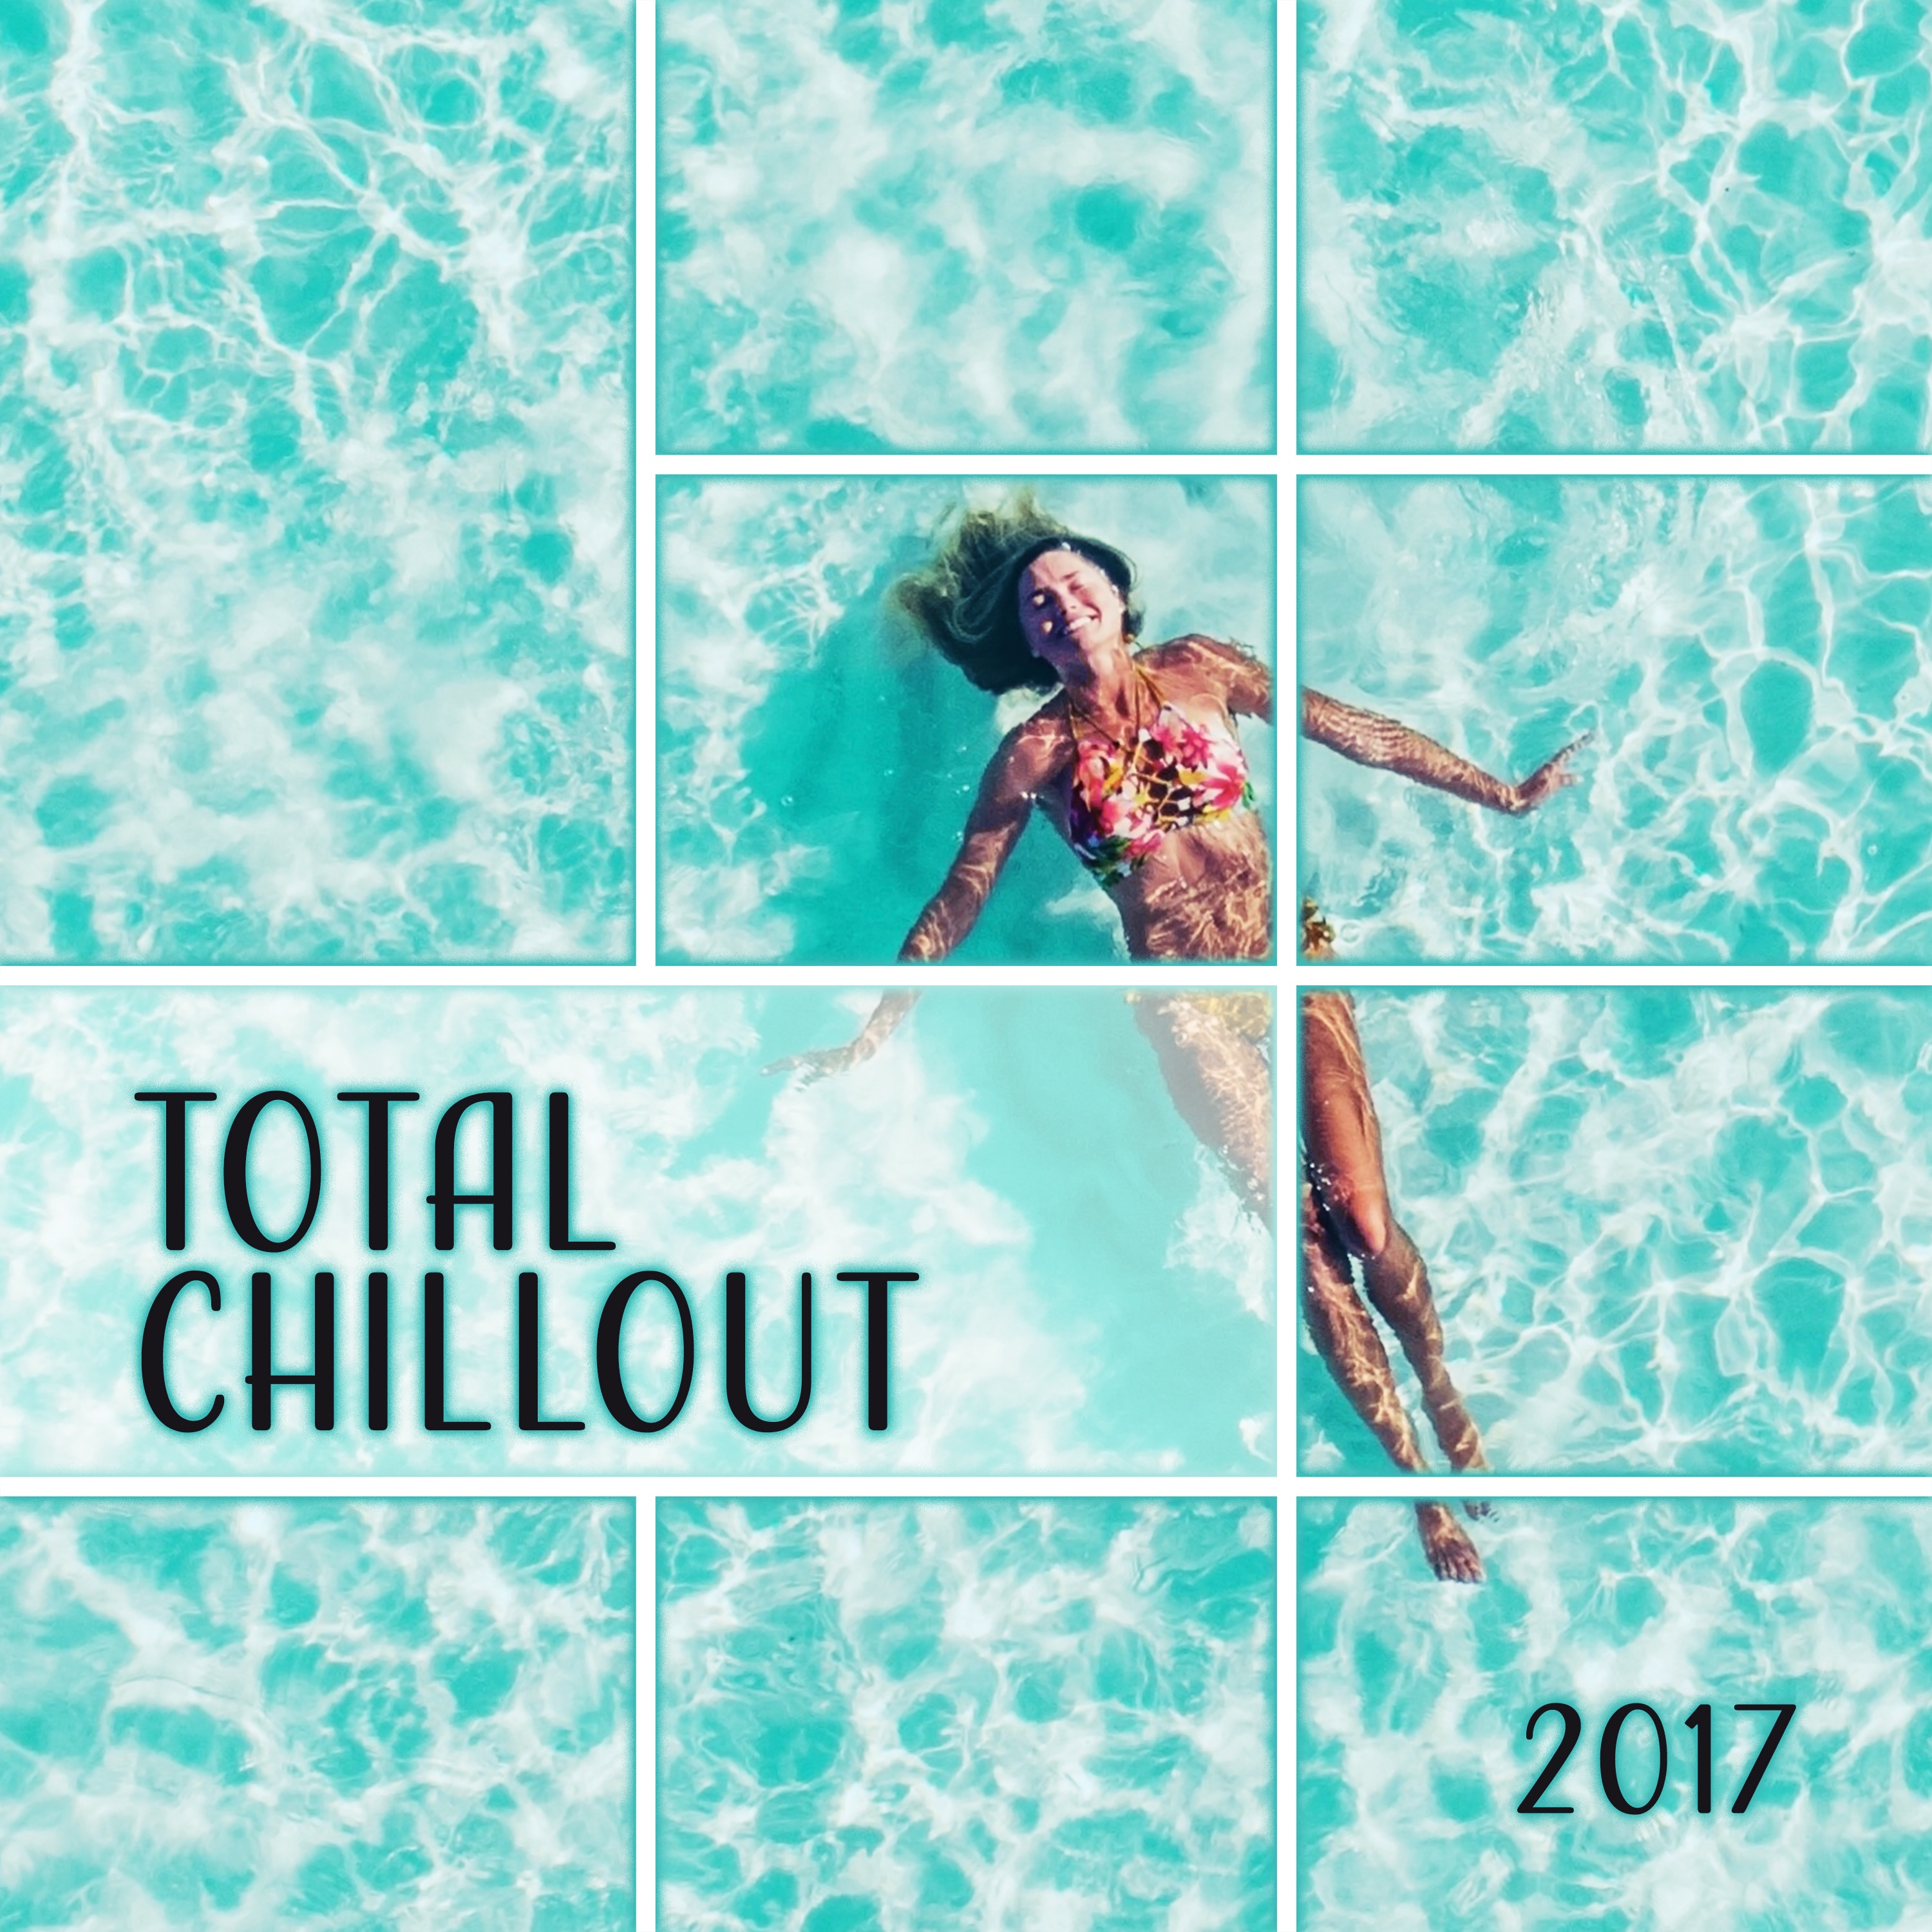 Total Chillout 2017